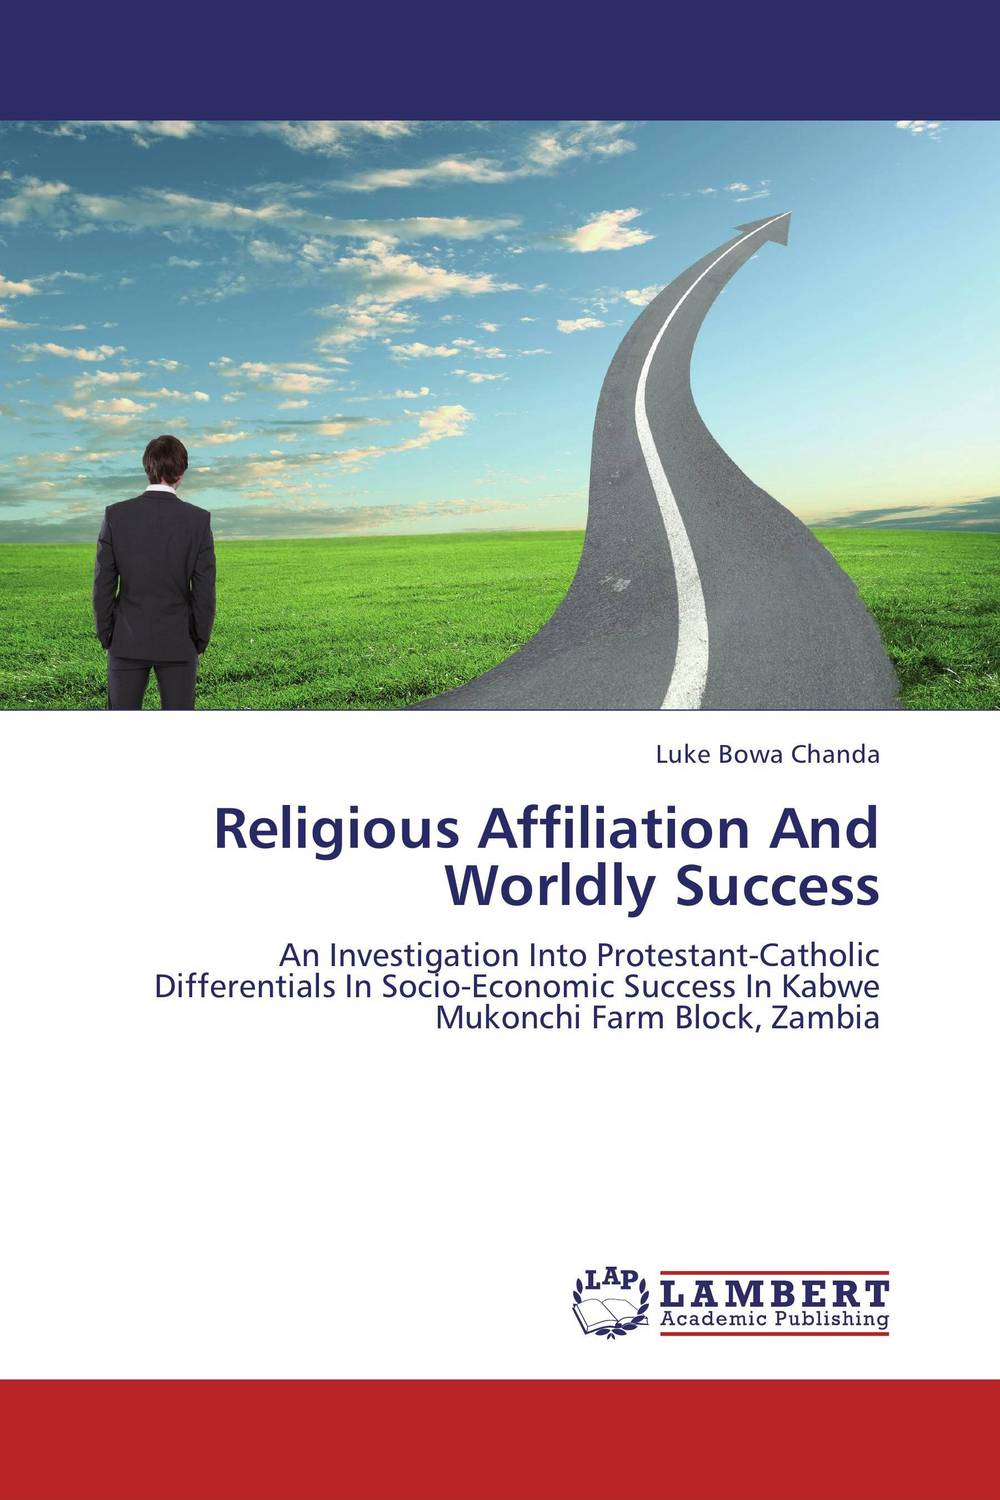 цена на Religious Affiliation And Worldly Success